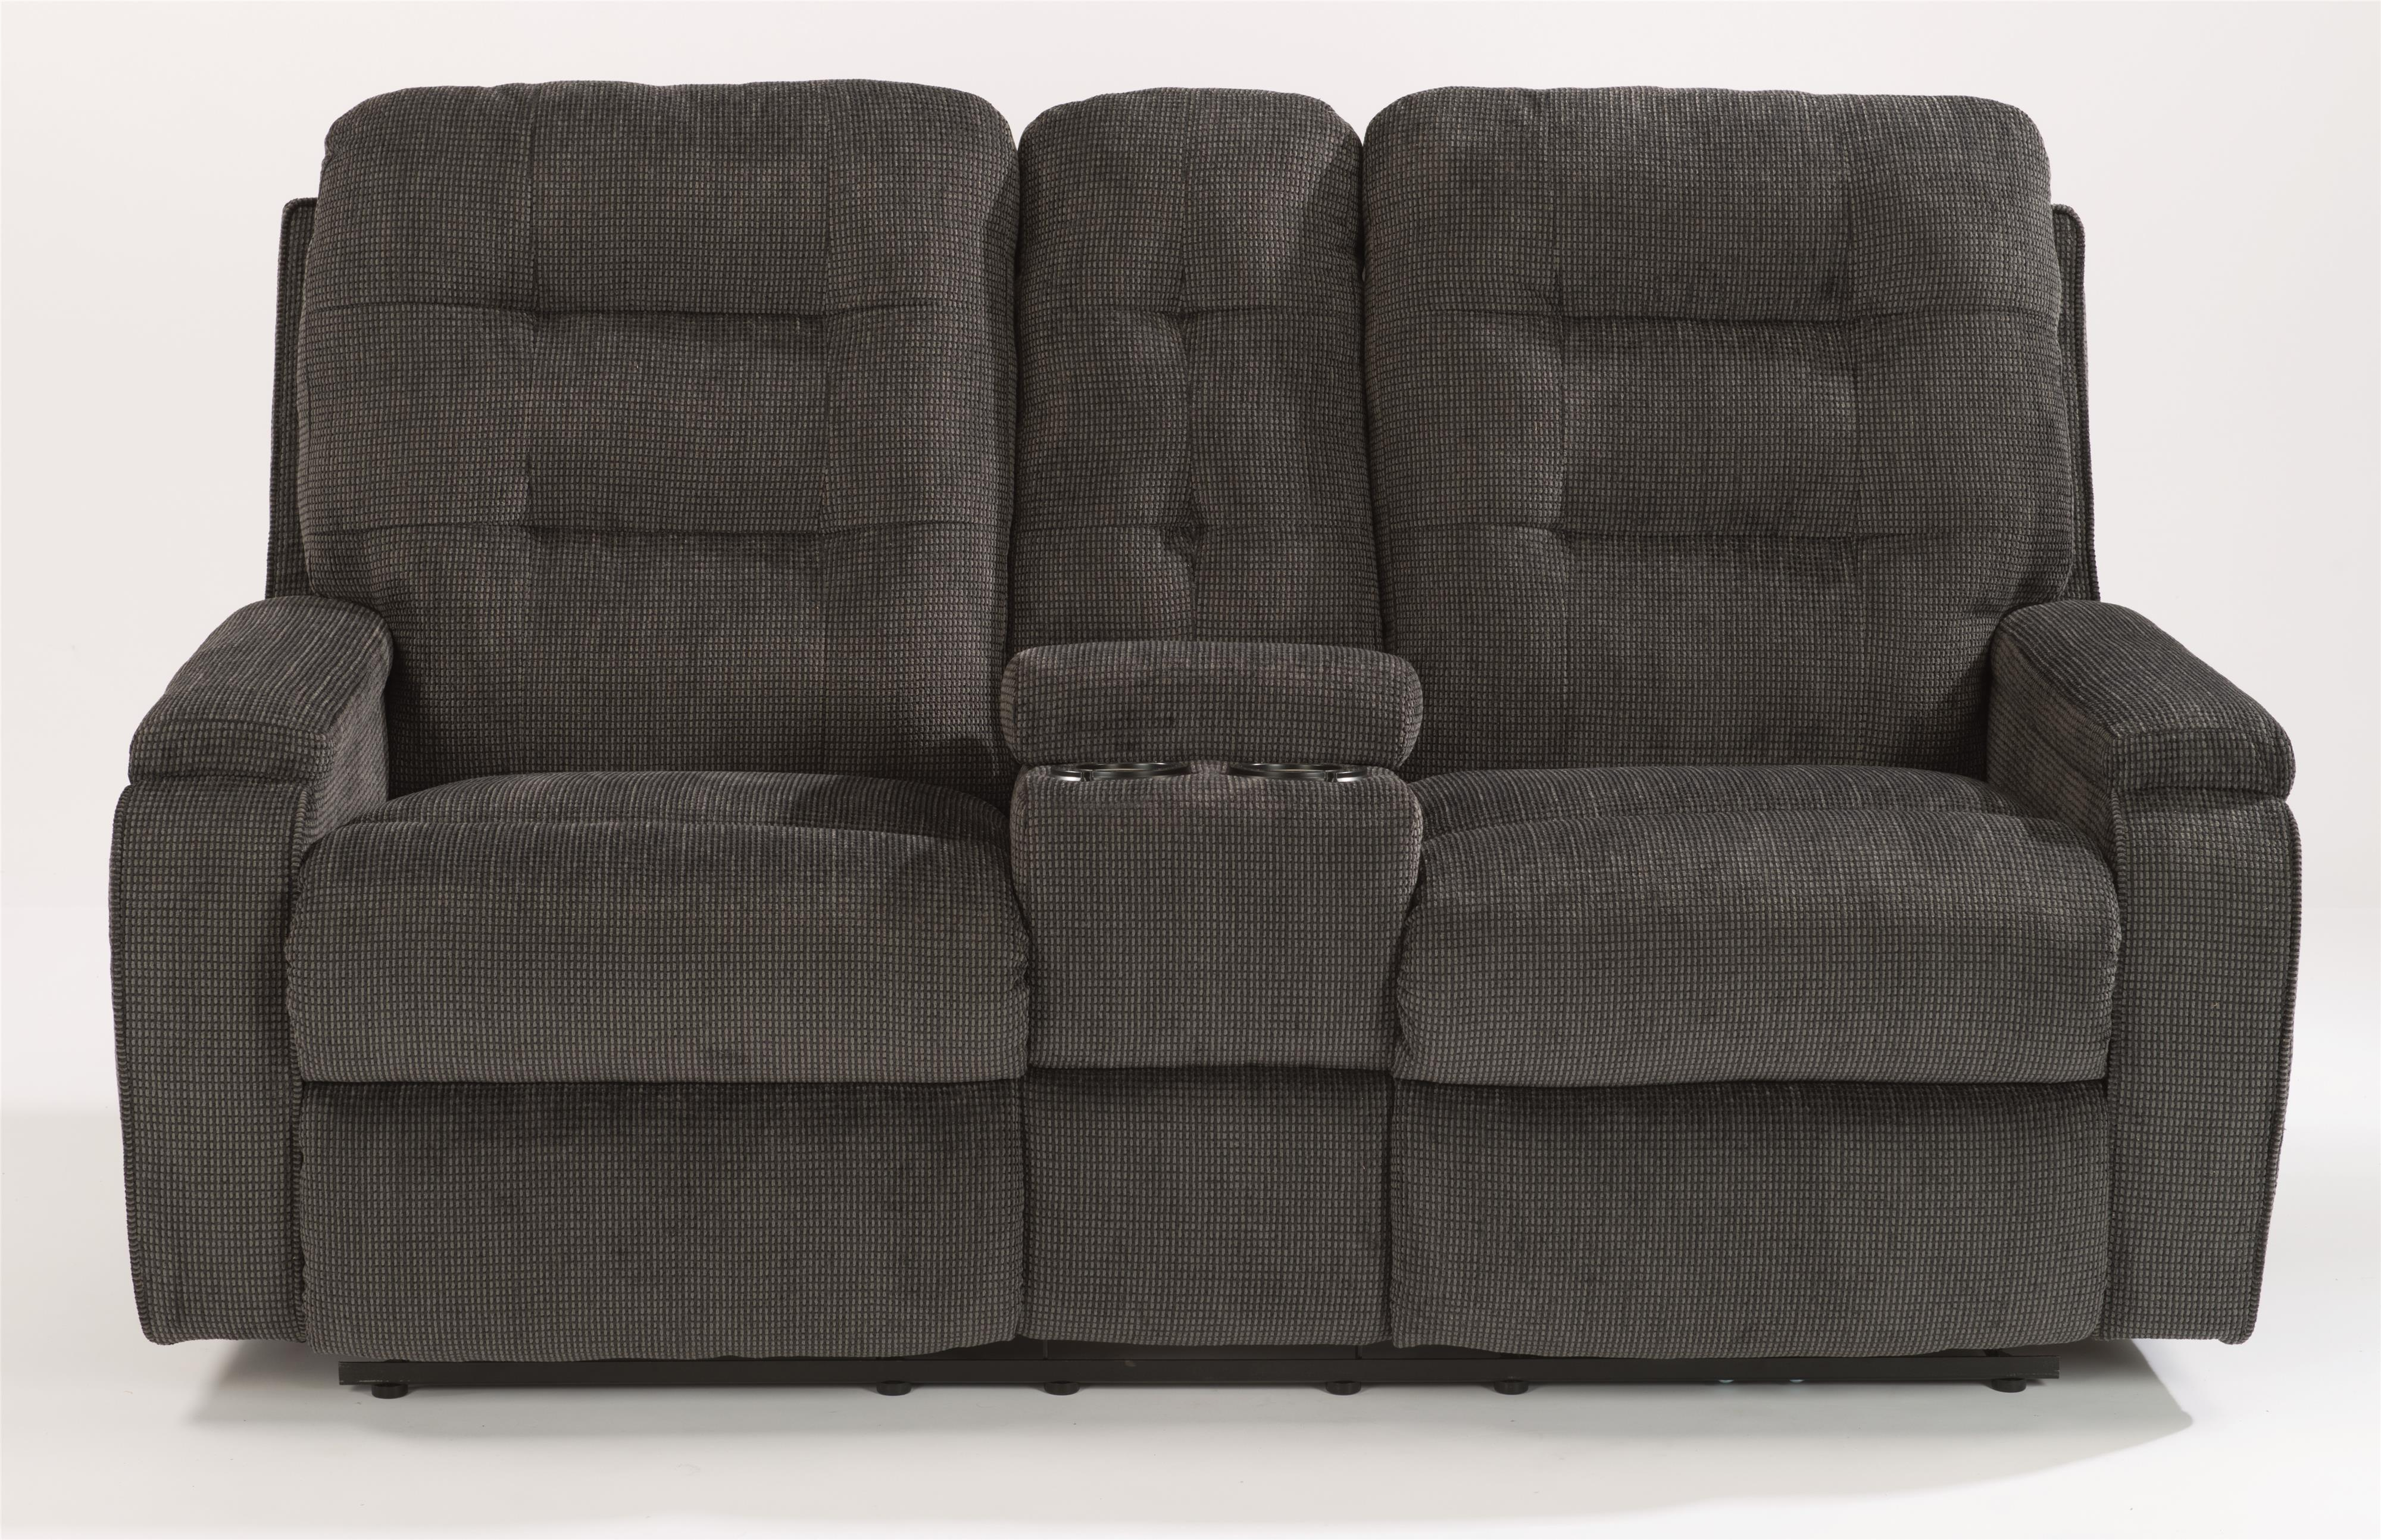 Flexsteel Kerrie Power Reclining Loveseat with Console - Item Number: 2806-601M-163-40